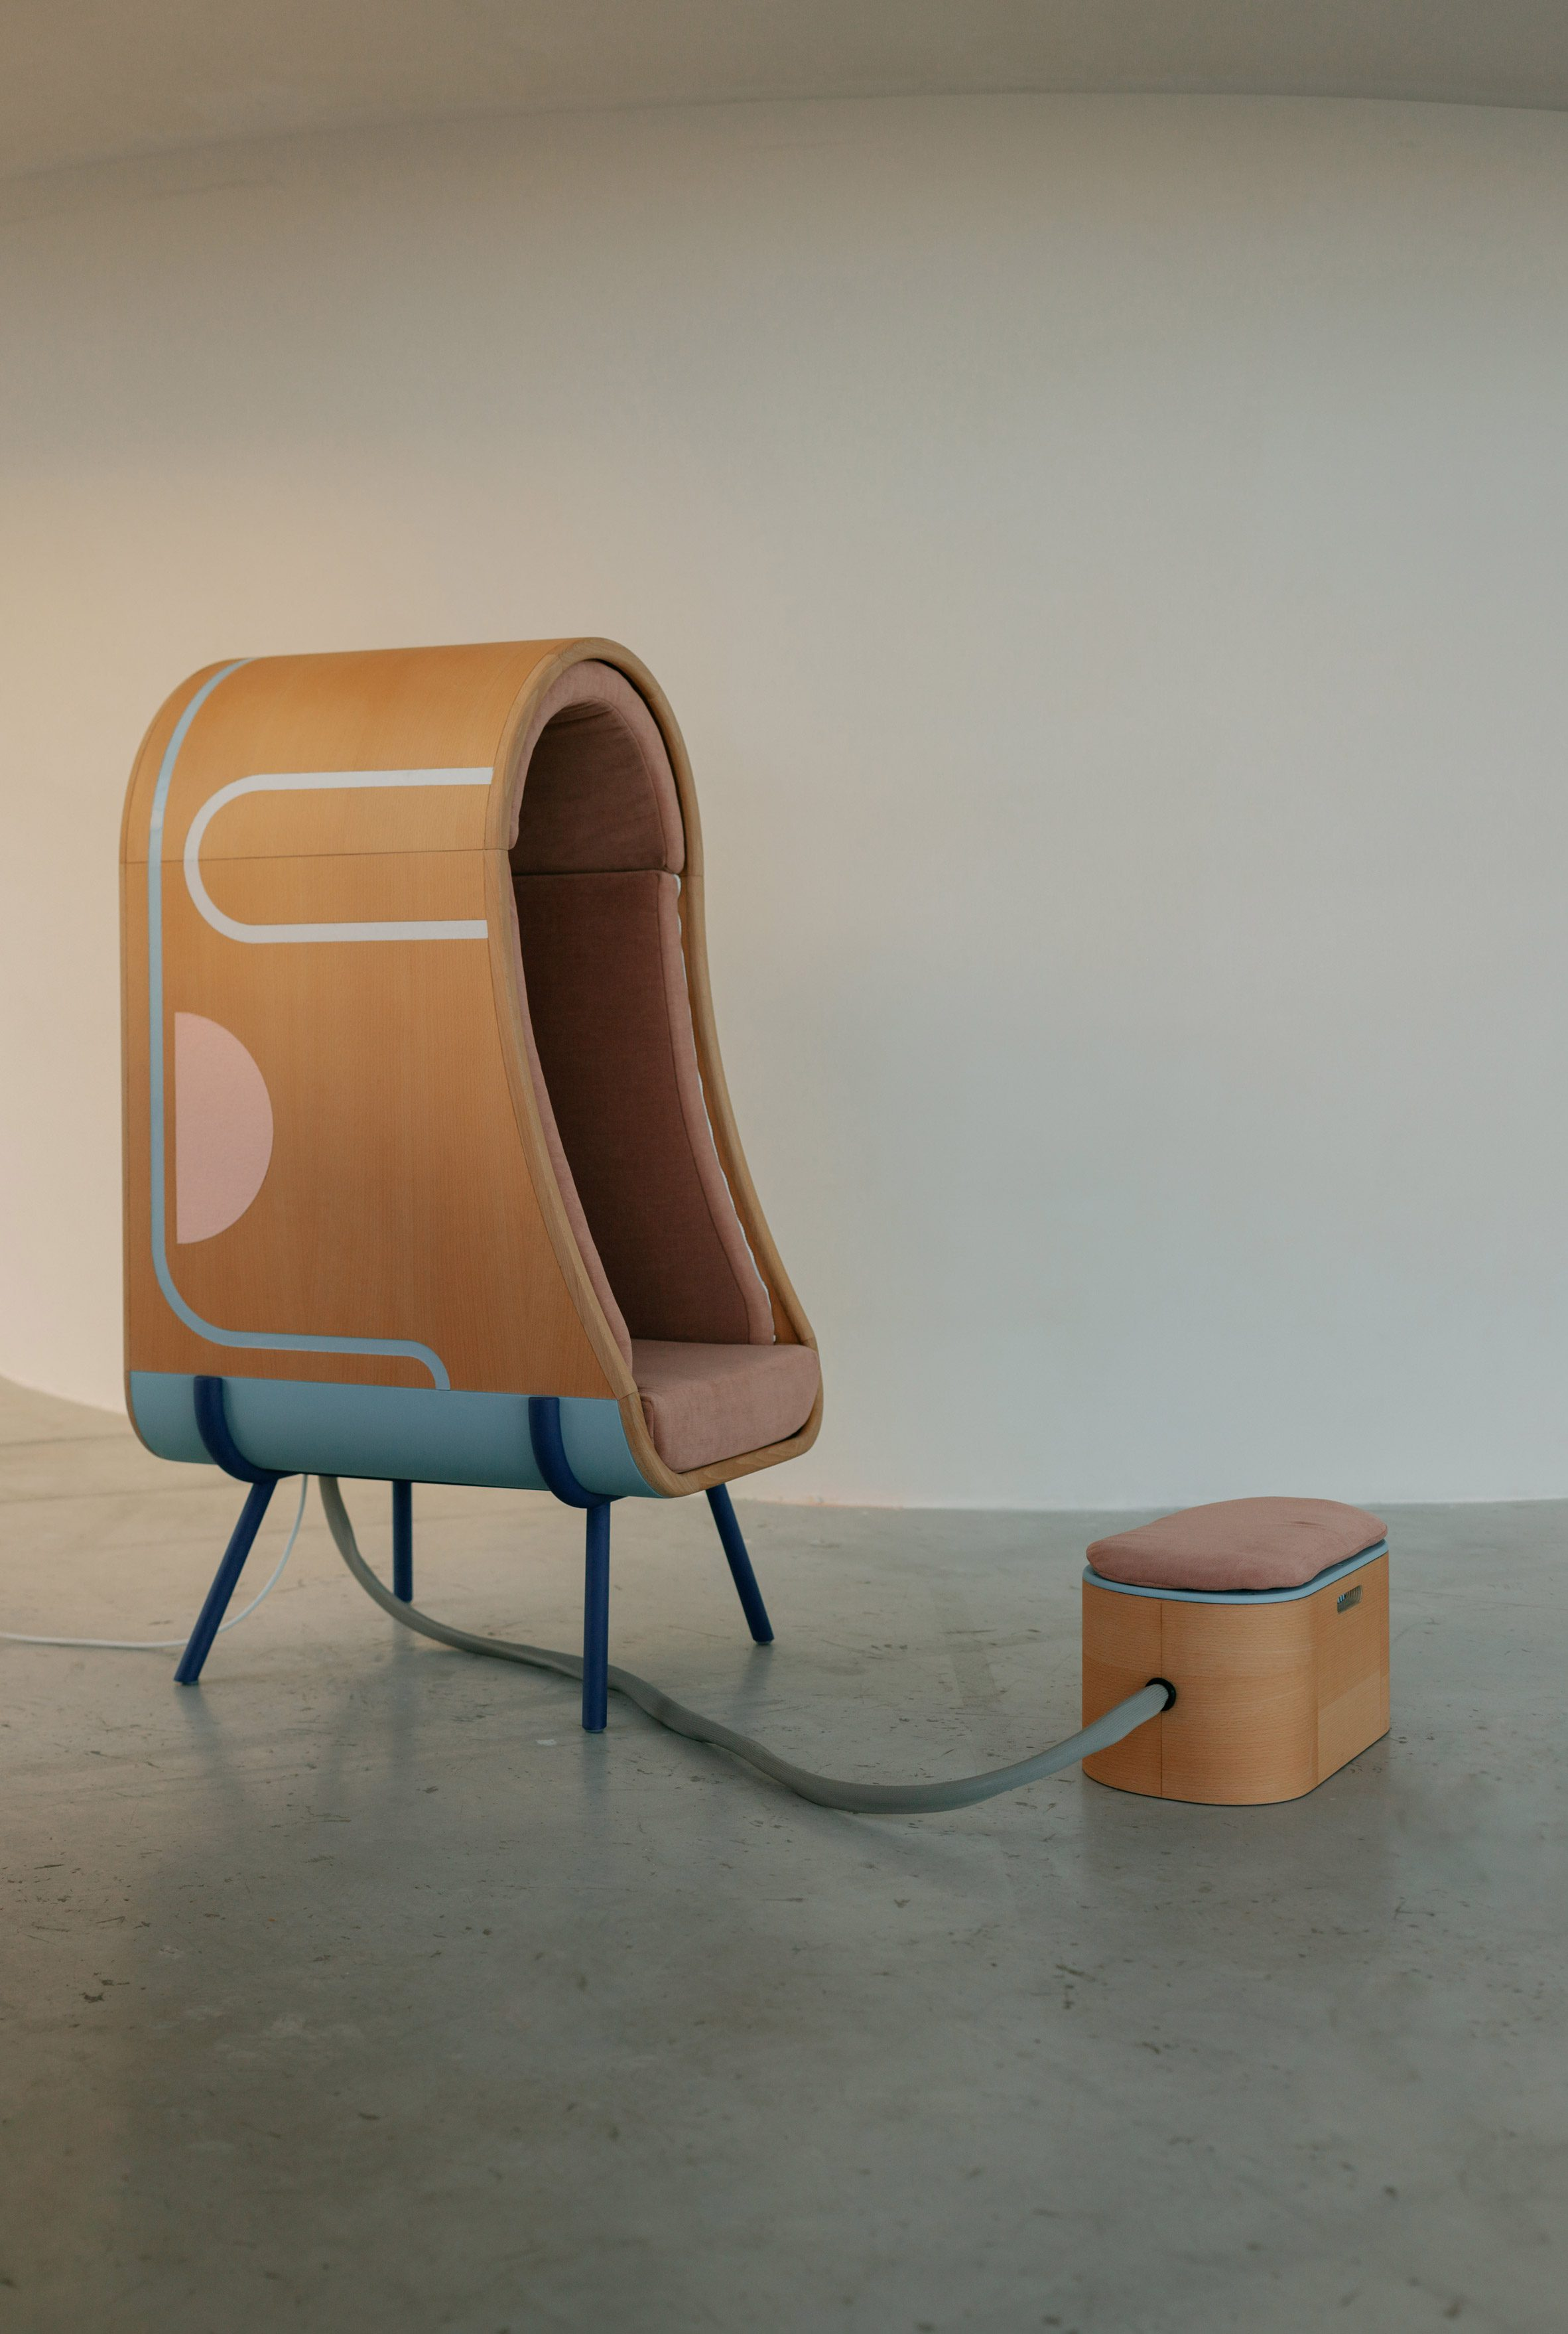 Wooden cocoon chair by Alexia Audrain with footrest